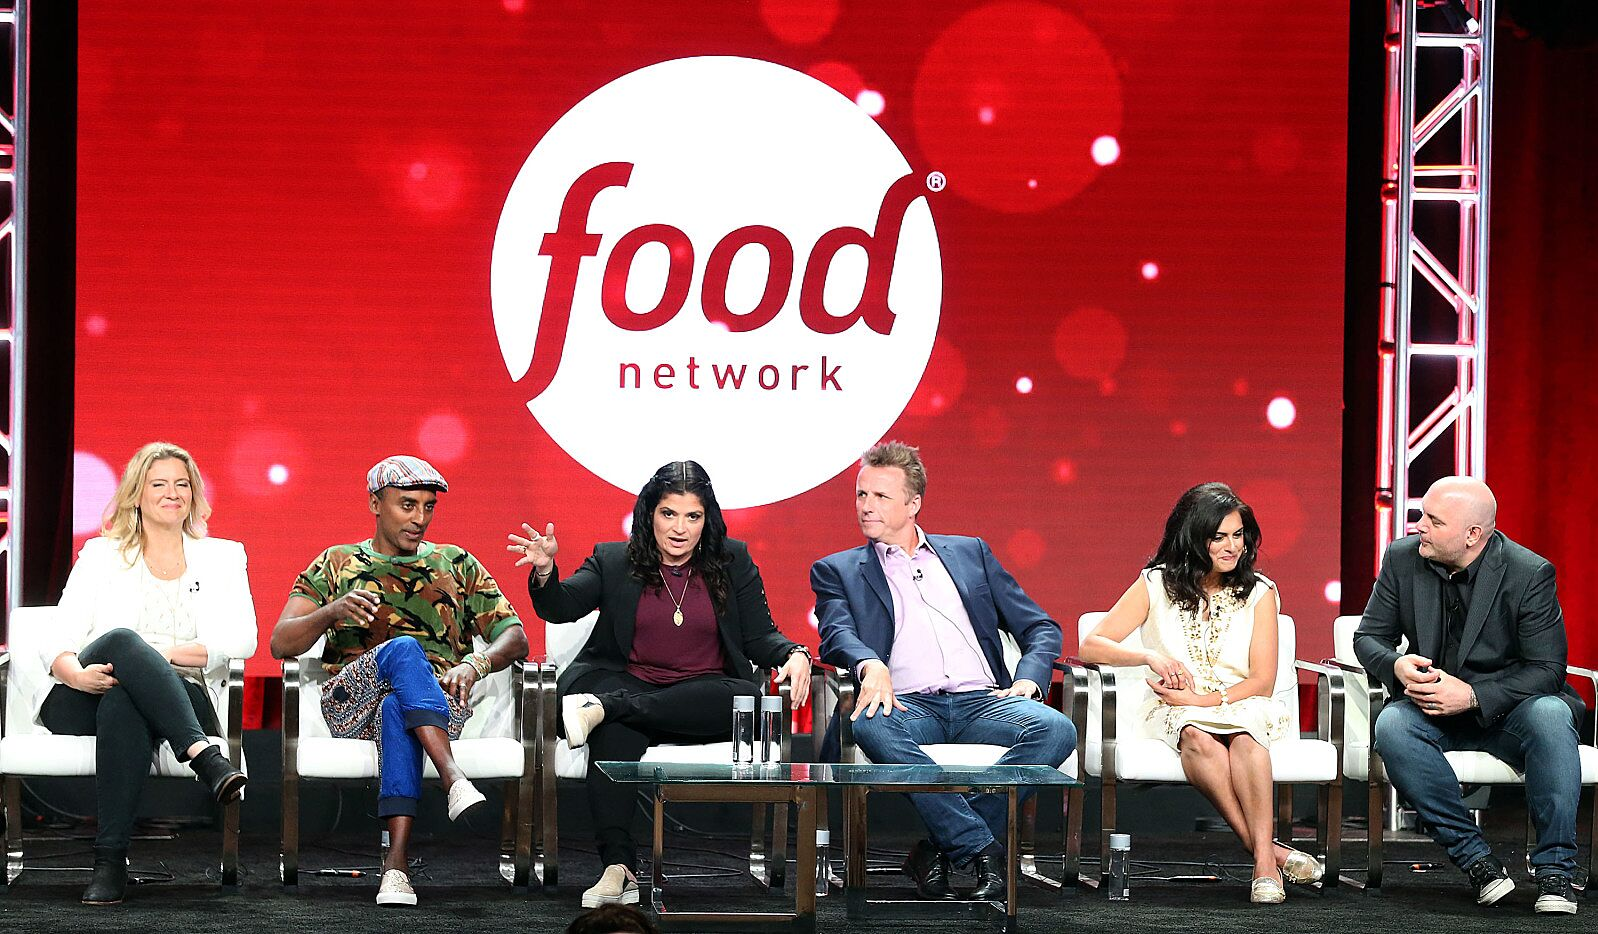 Food Network: Who will be in Tournament of Champions?